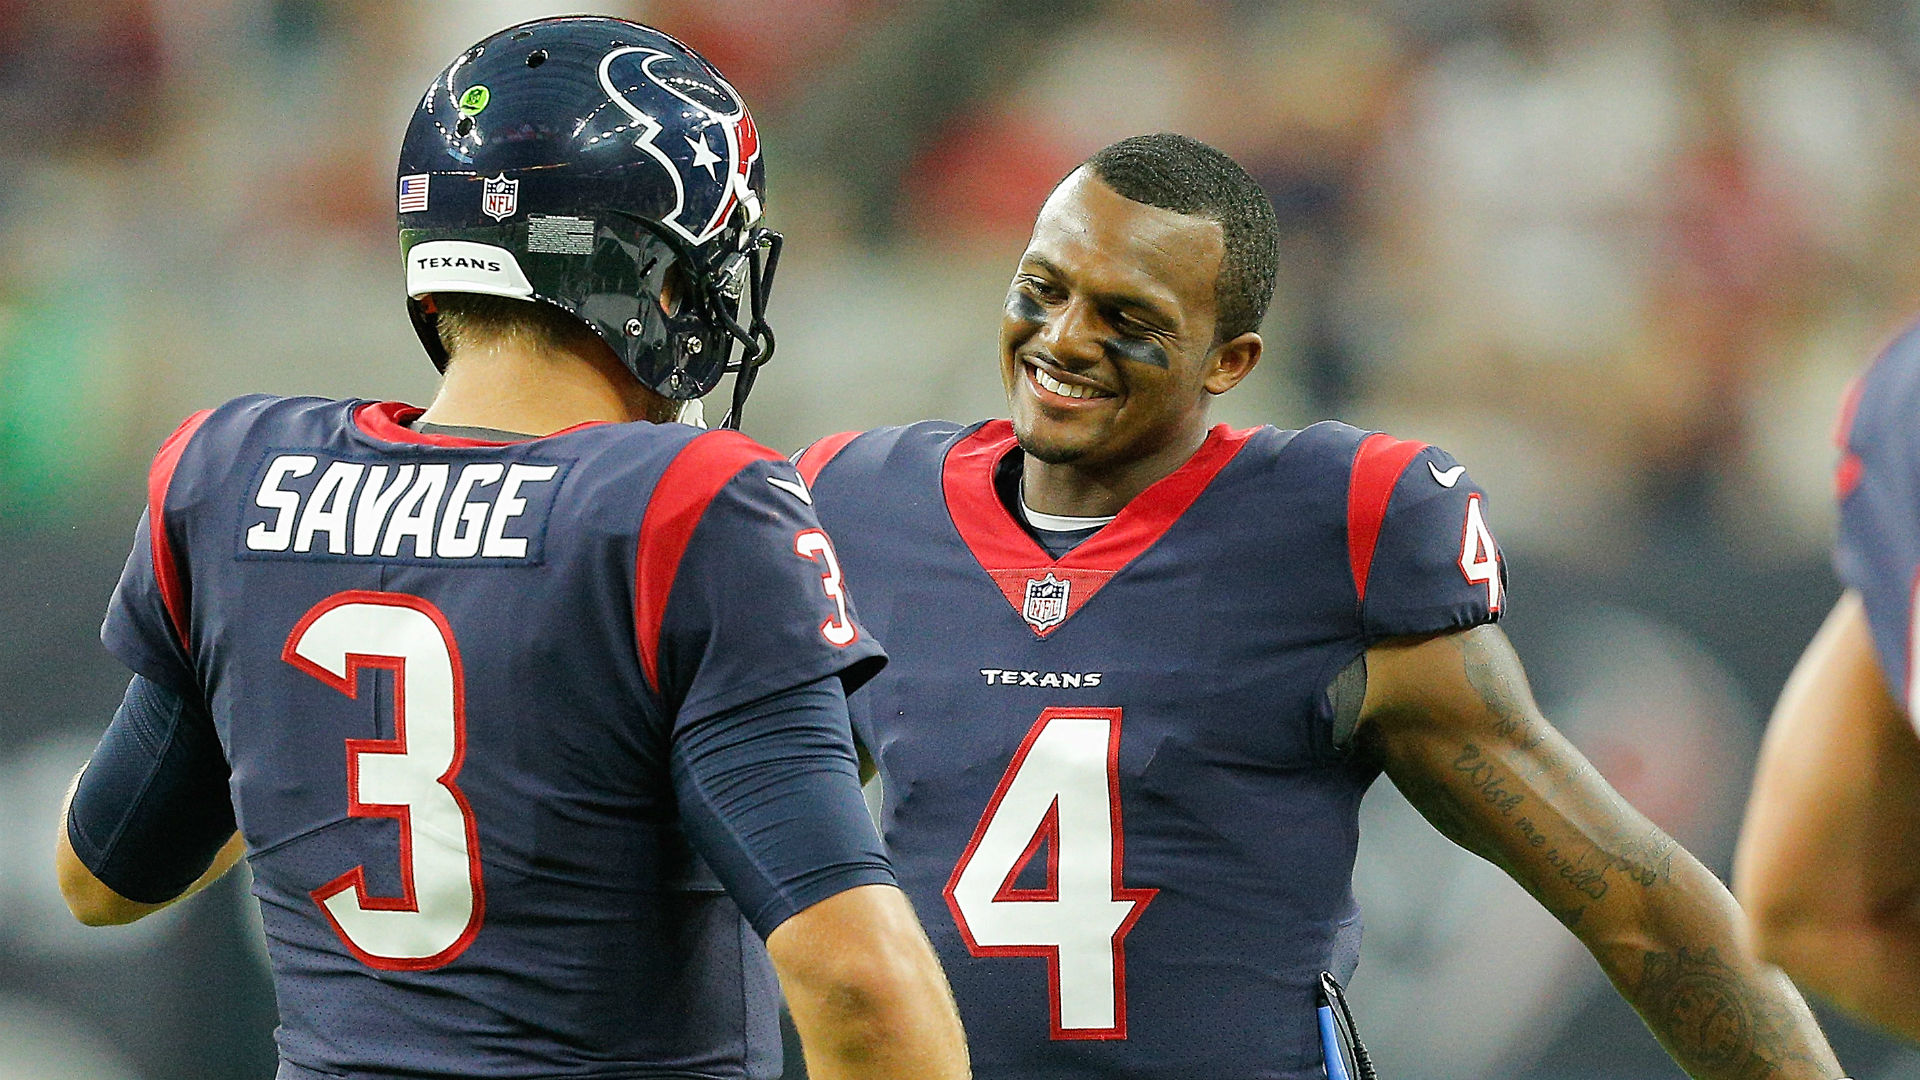 Watson gets the start for the Texans in Cincinnati